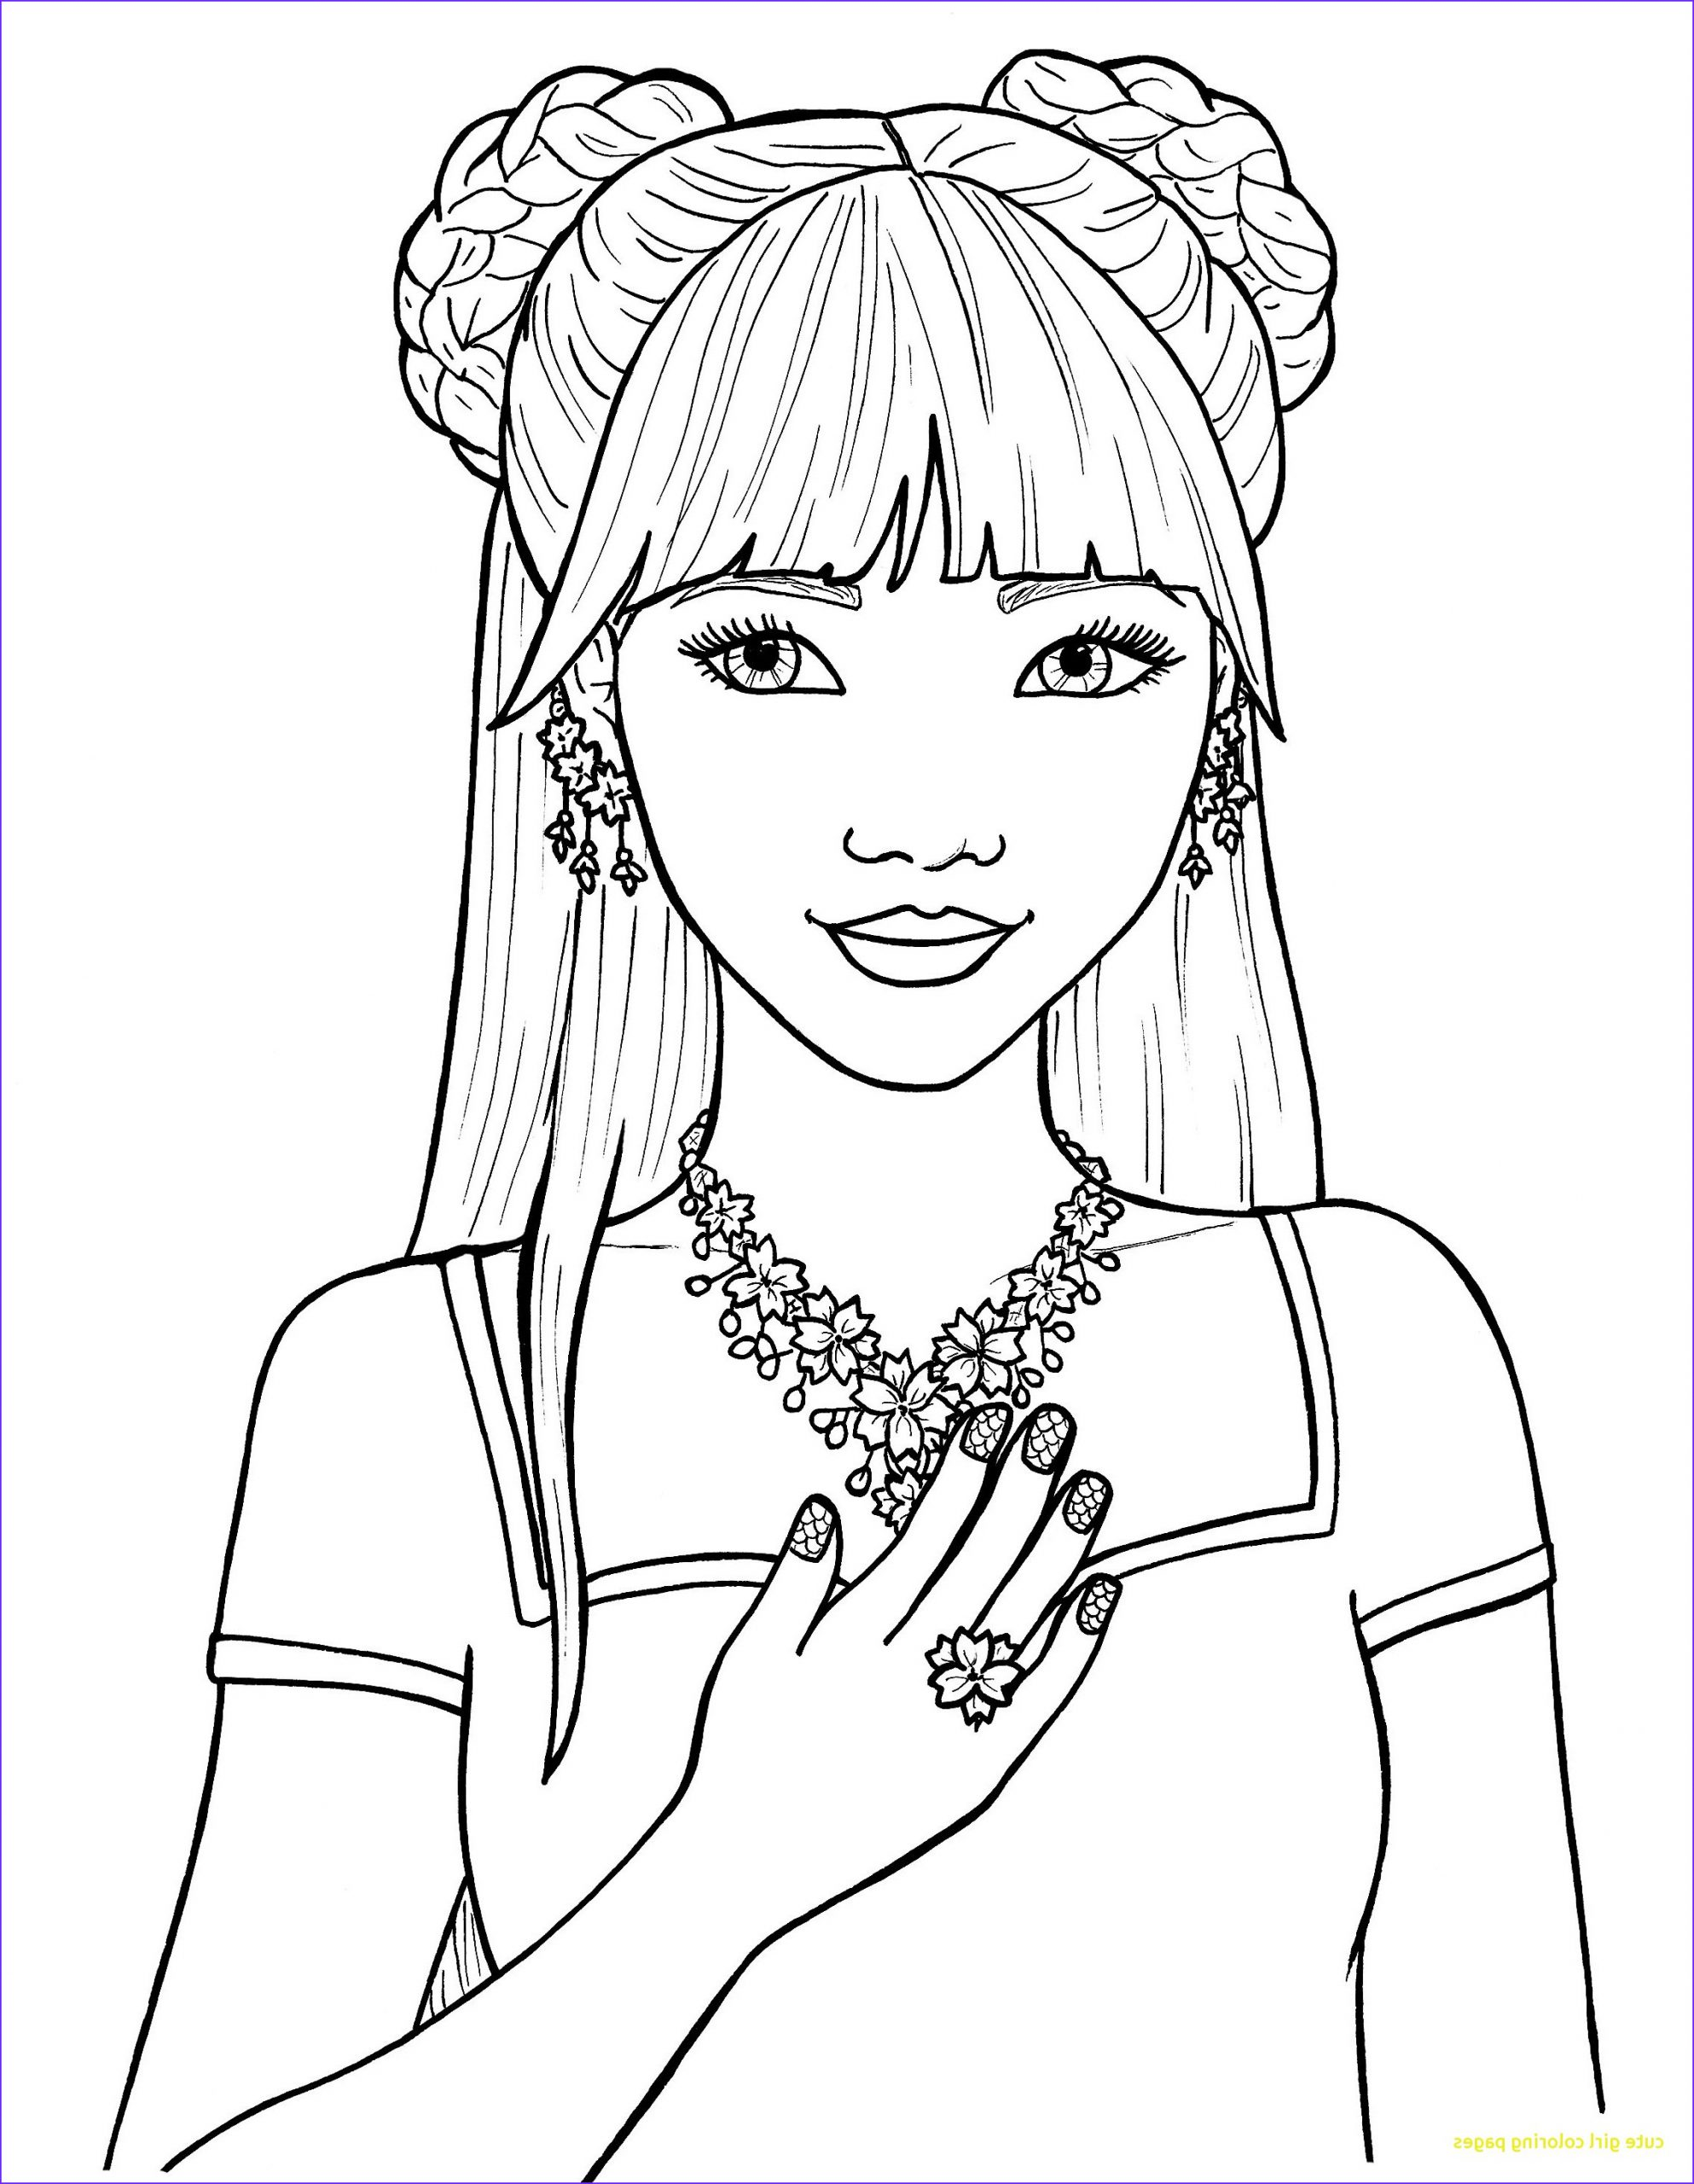 Color Coloring Book New Photos Coloring Pages for Girls Best Coloring Pages for Kids